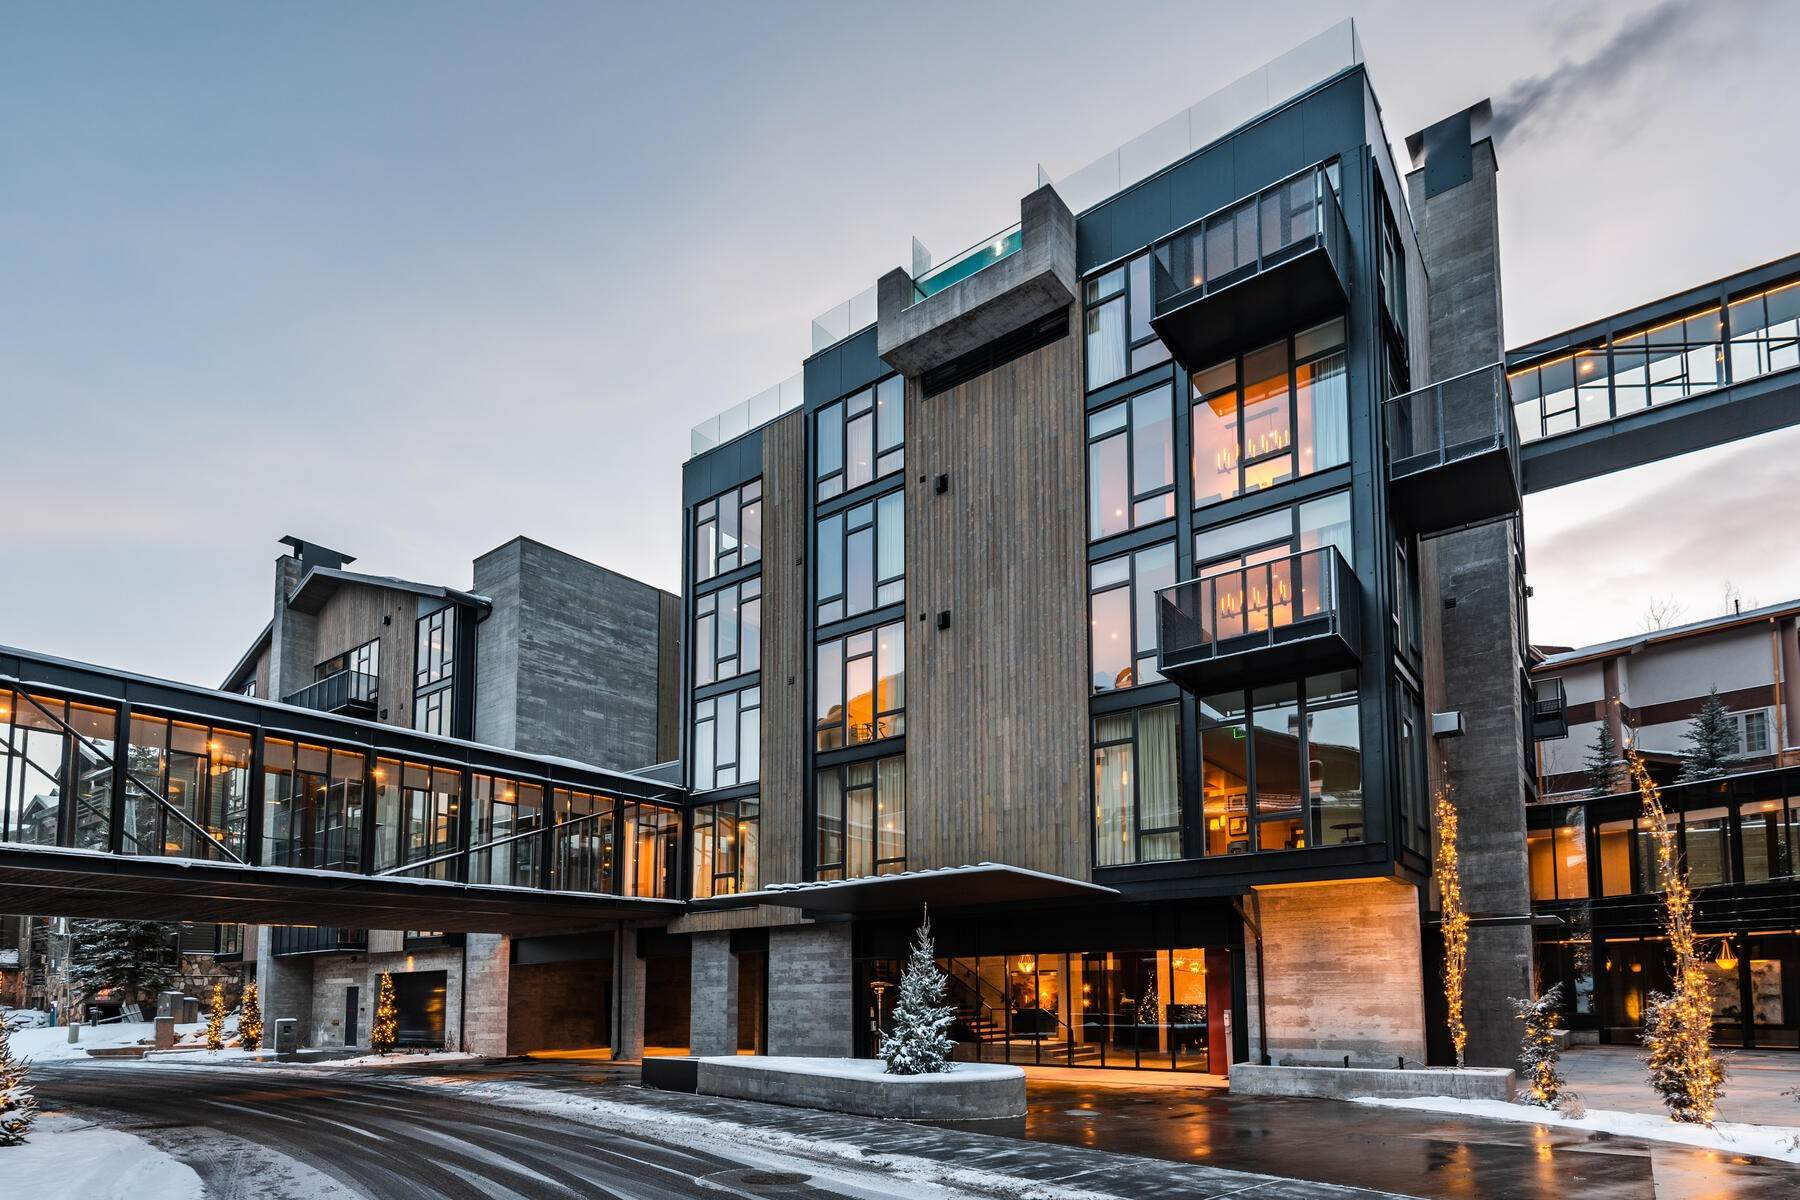 Condominiums for Sale at Boutique Luxury Hotel Residences in Prime Deer Valley Silver Lake Village 7520 Royal Street #411 Park City, Utah 84060 United States